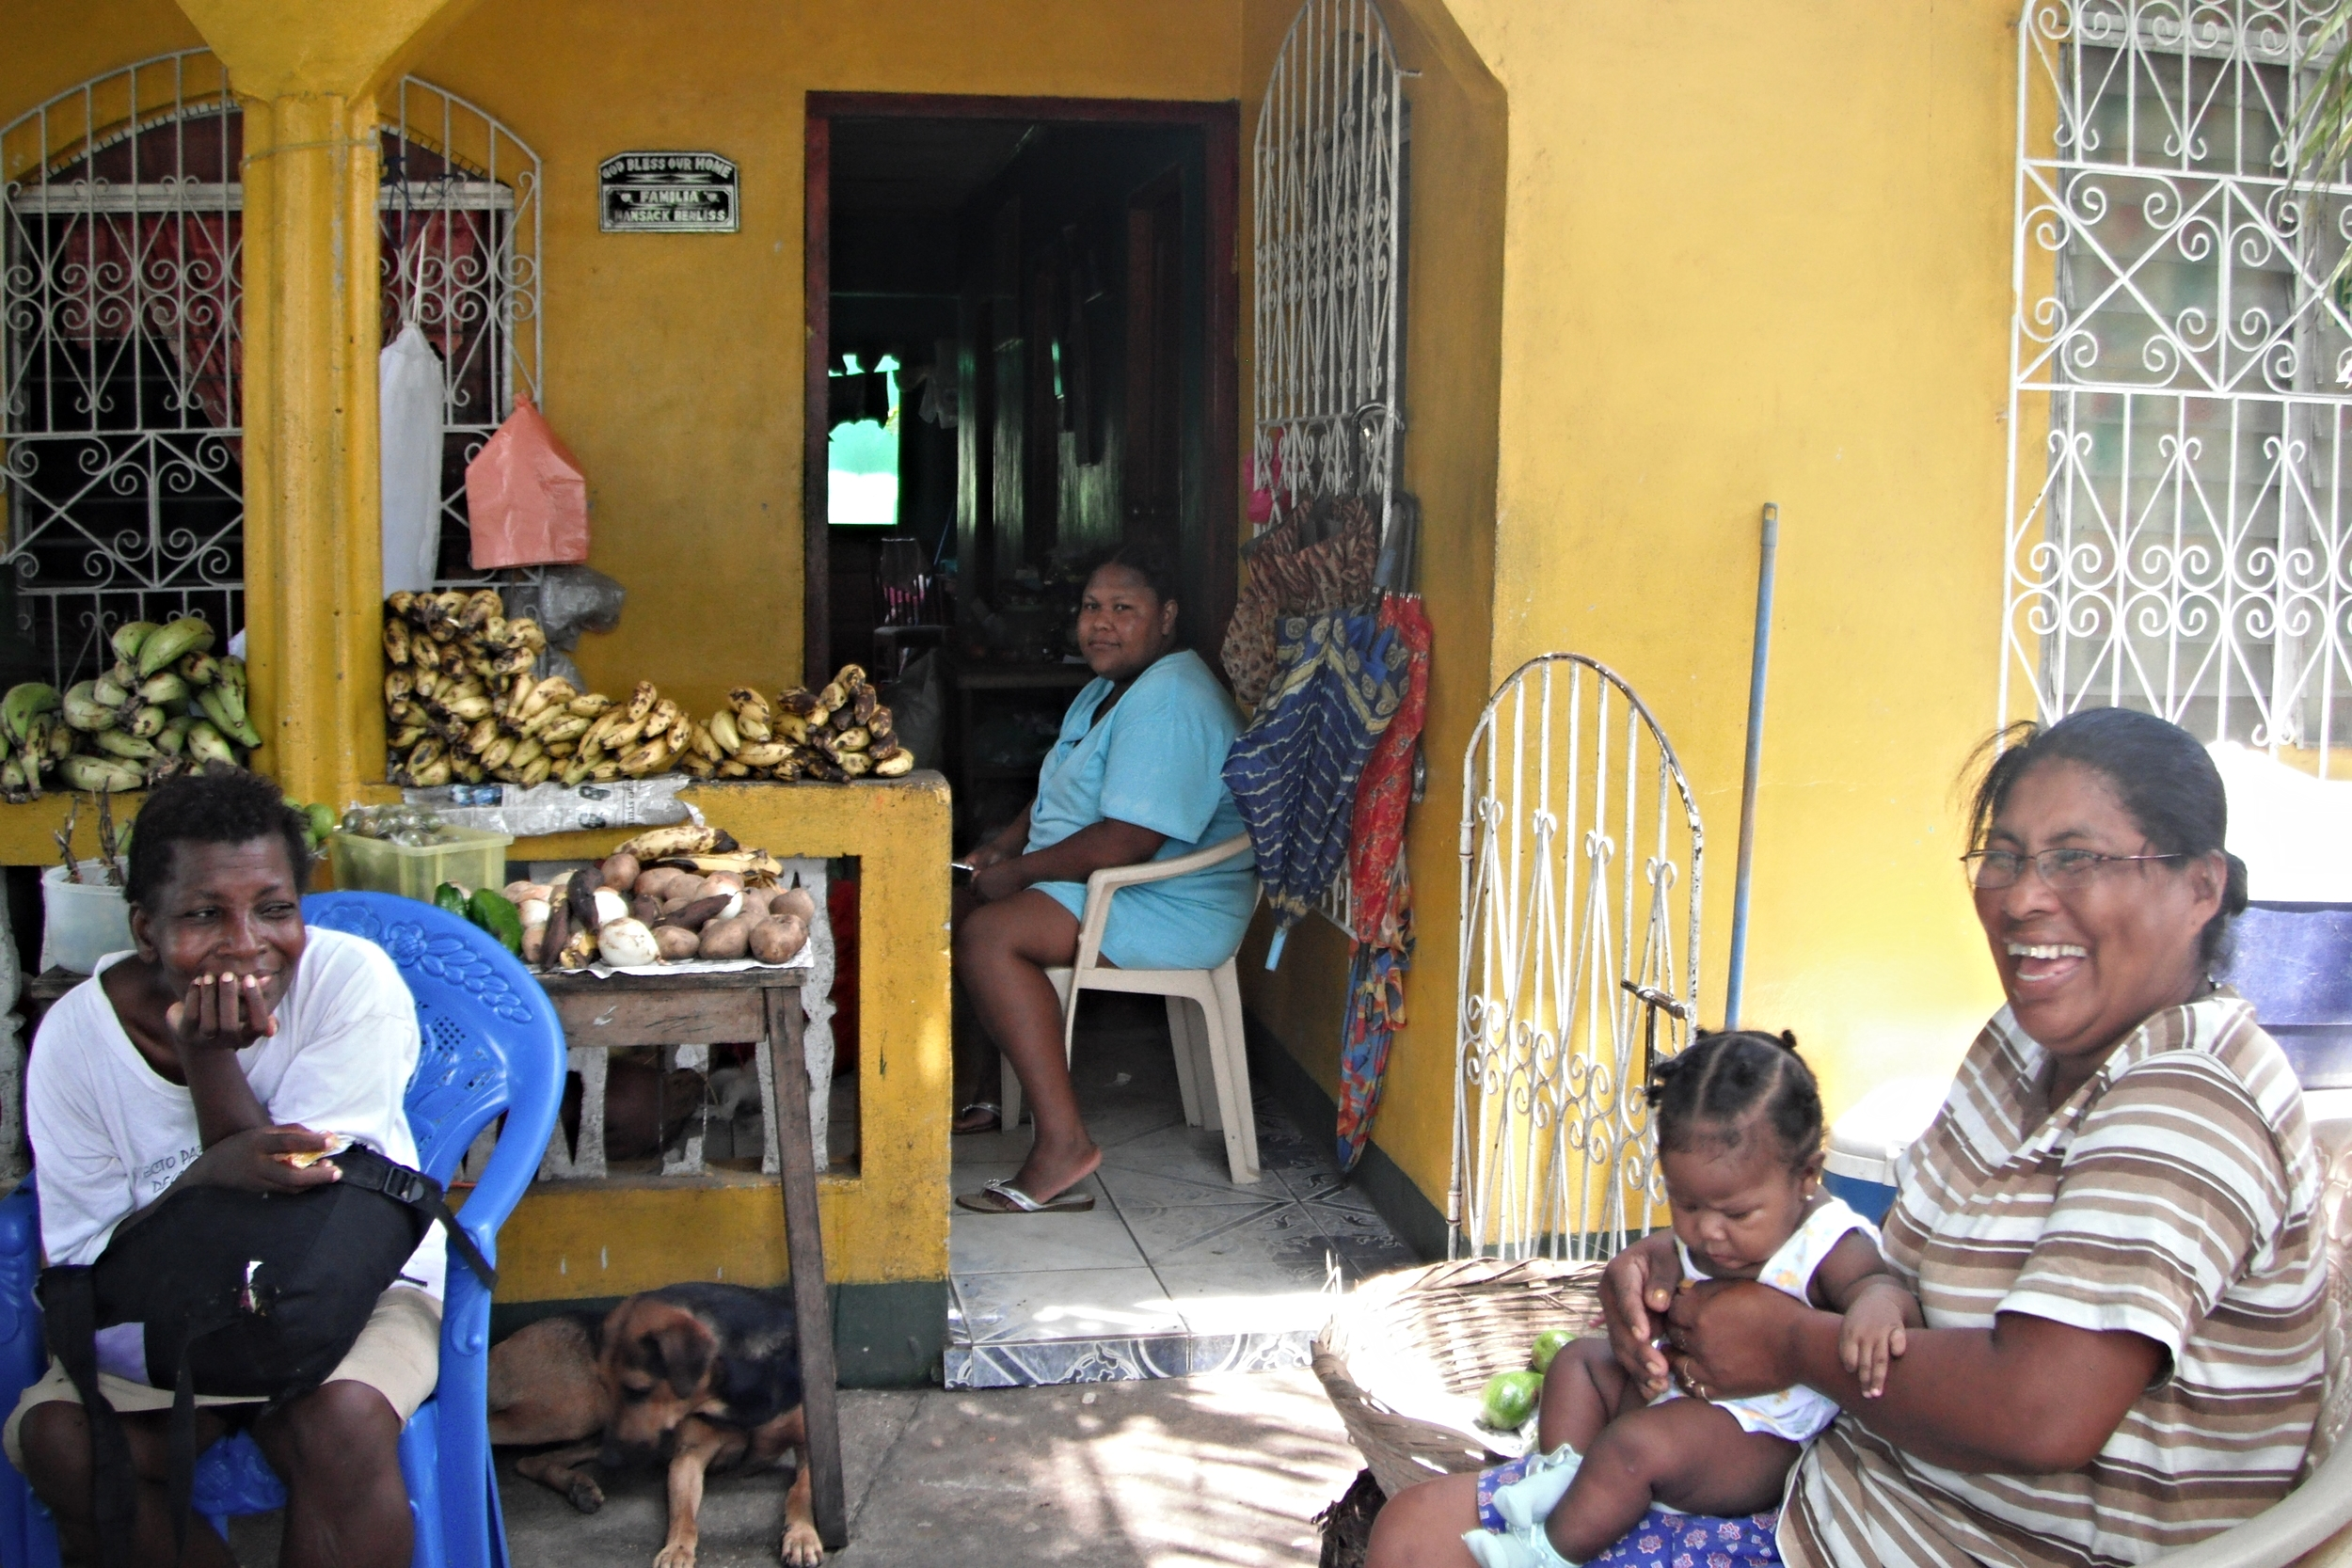 The smallest stores are set up in living roomsand on porches, often selling produce directly from the shop owner's farm.